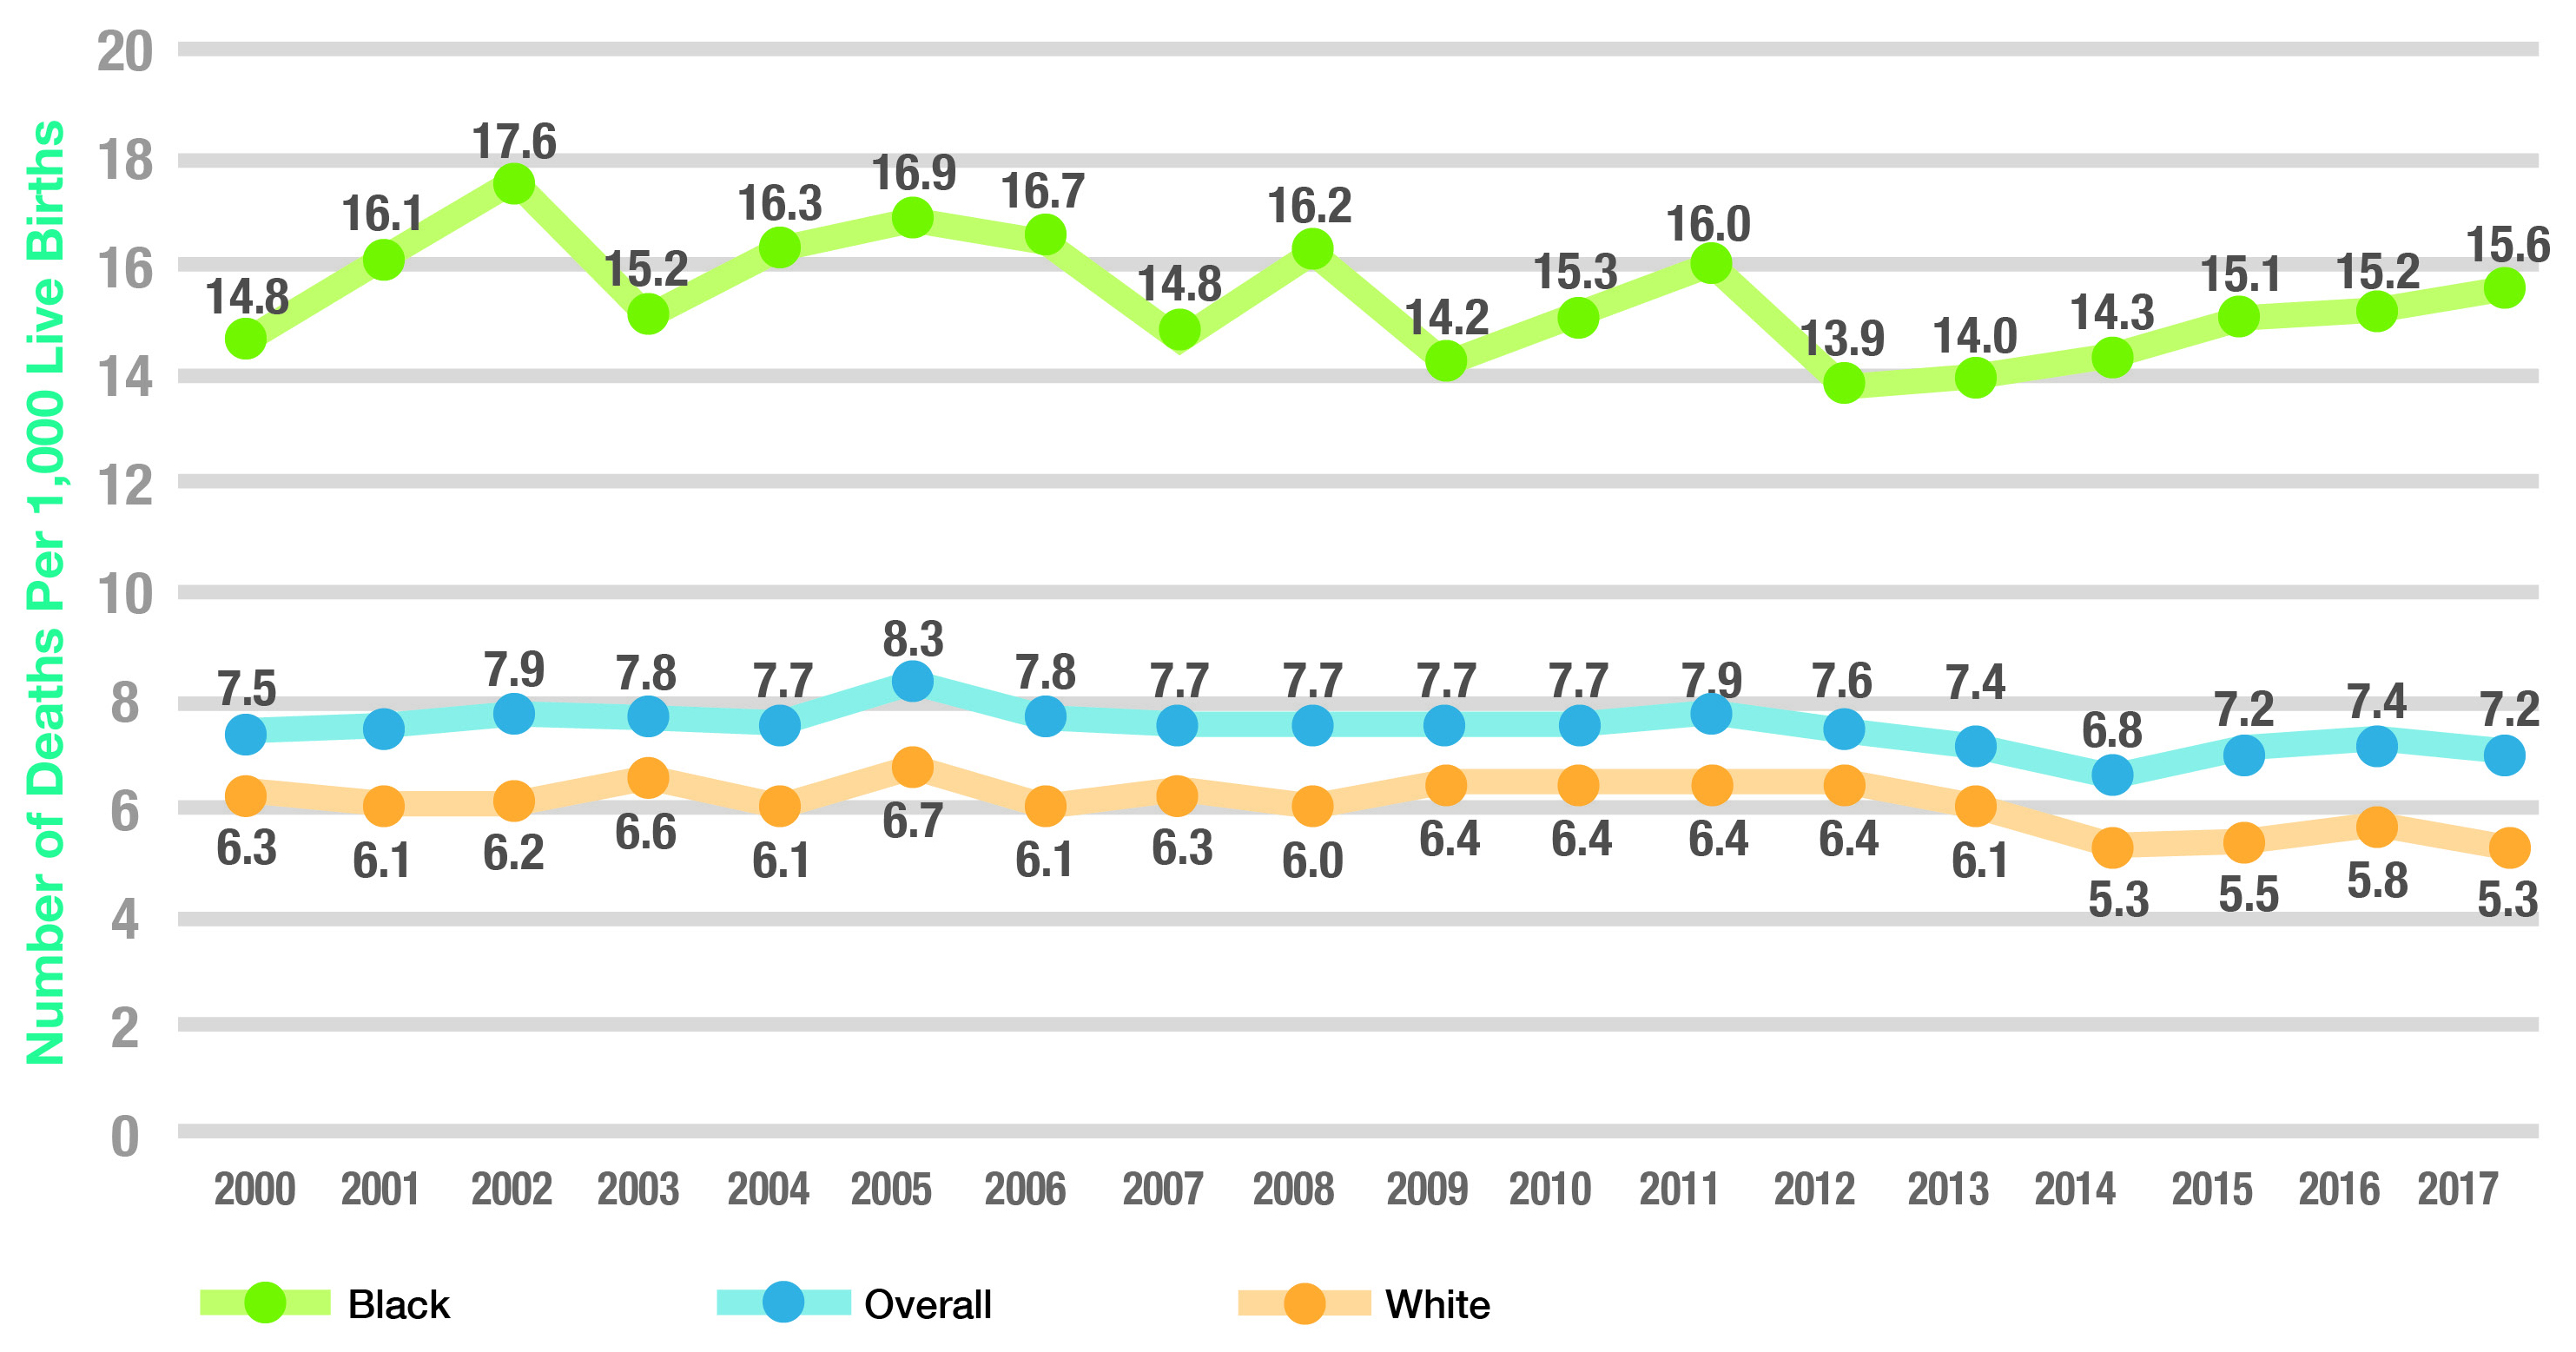 Chart: Ohio Infant Mortality Rates (2000-2017) by Maternal Race: Black 15.6 – White 5.3